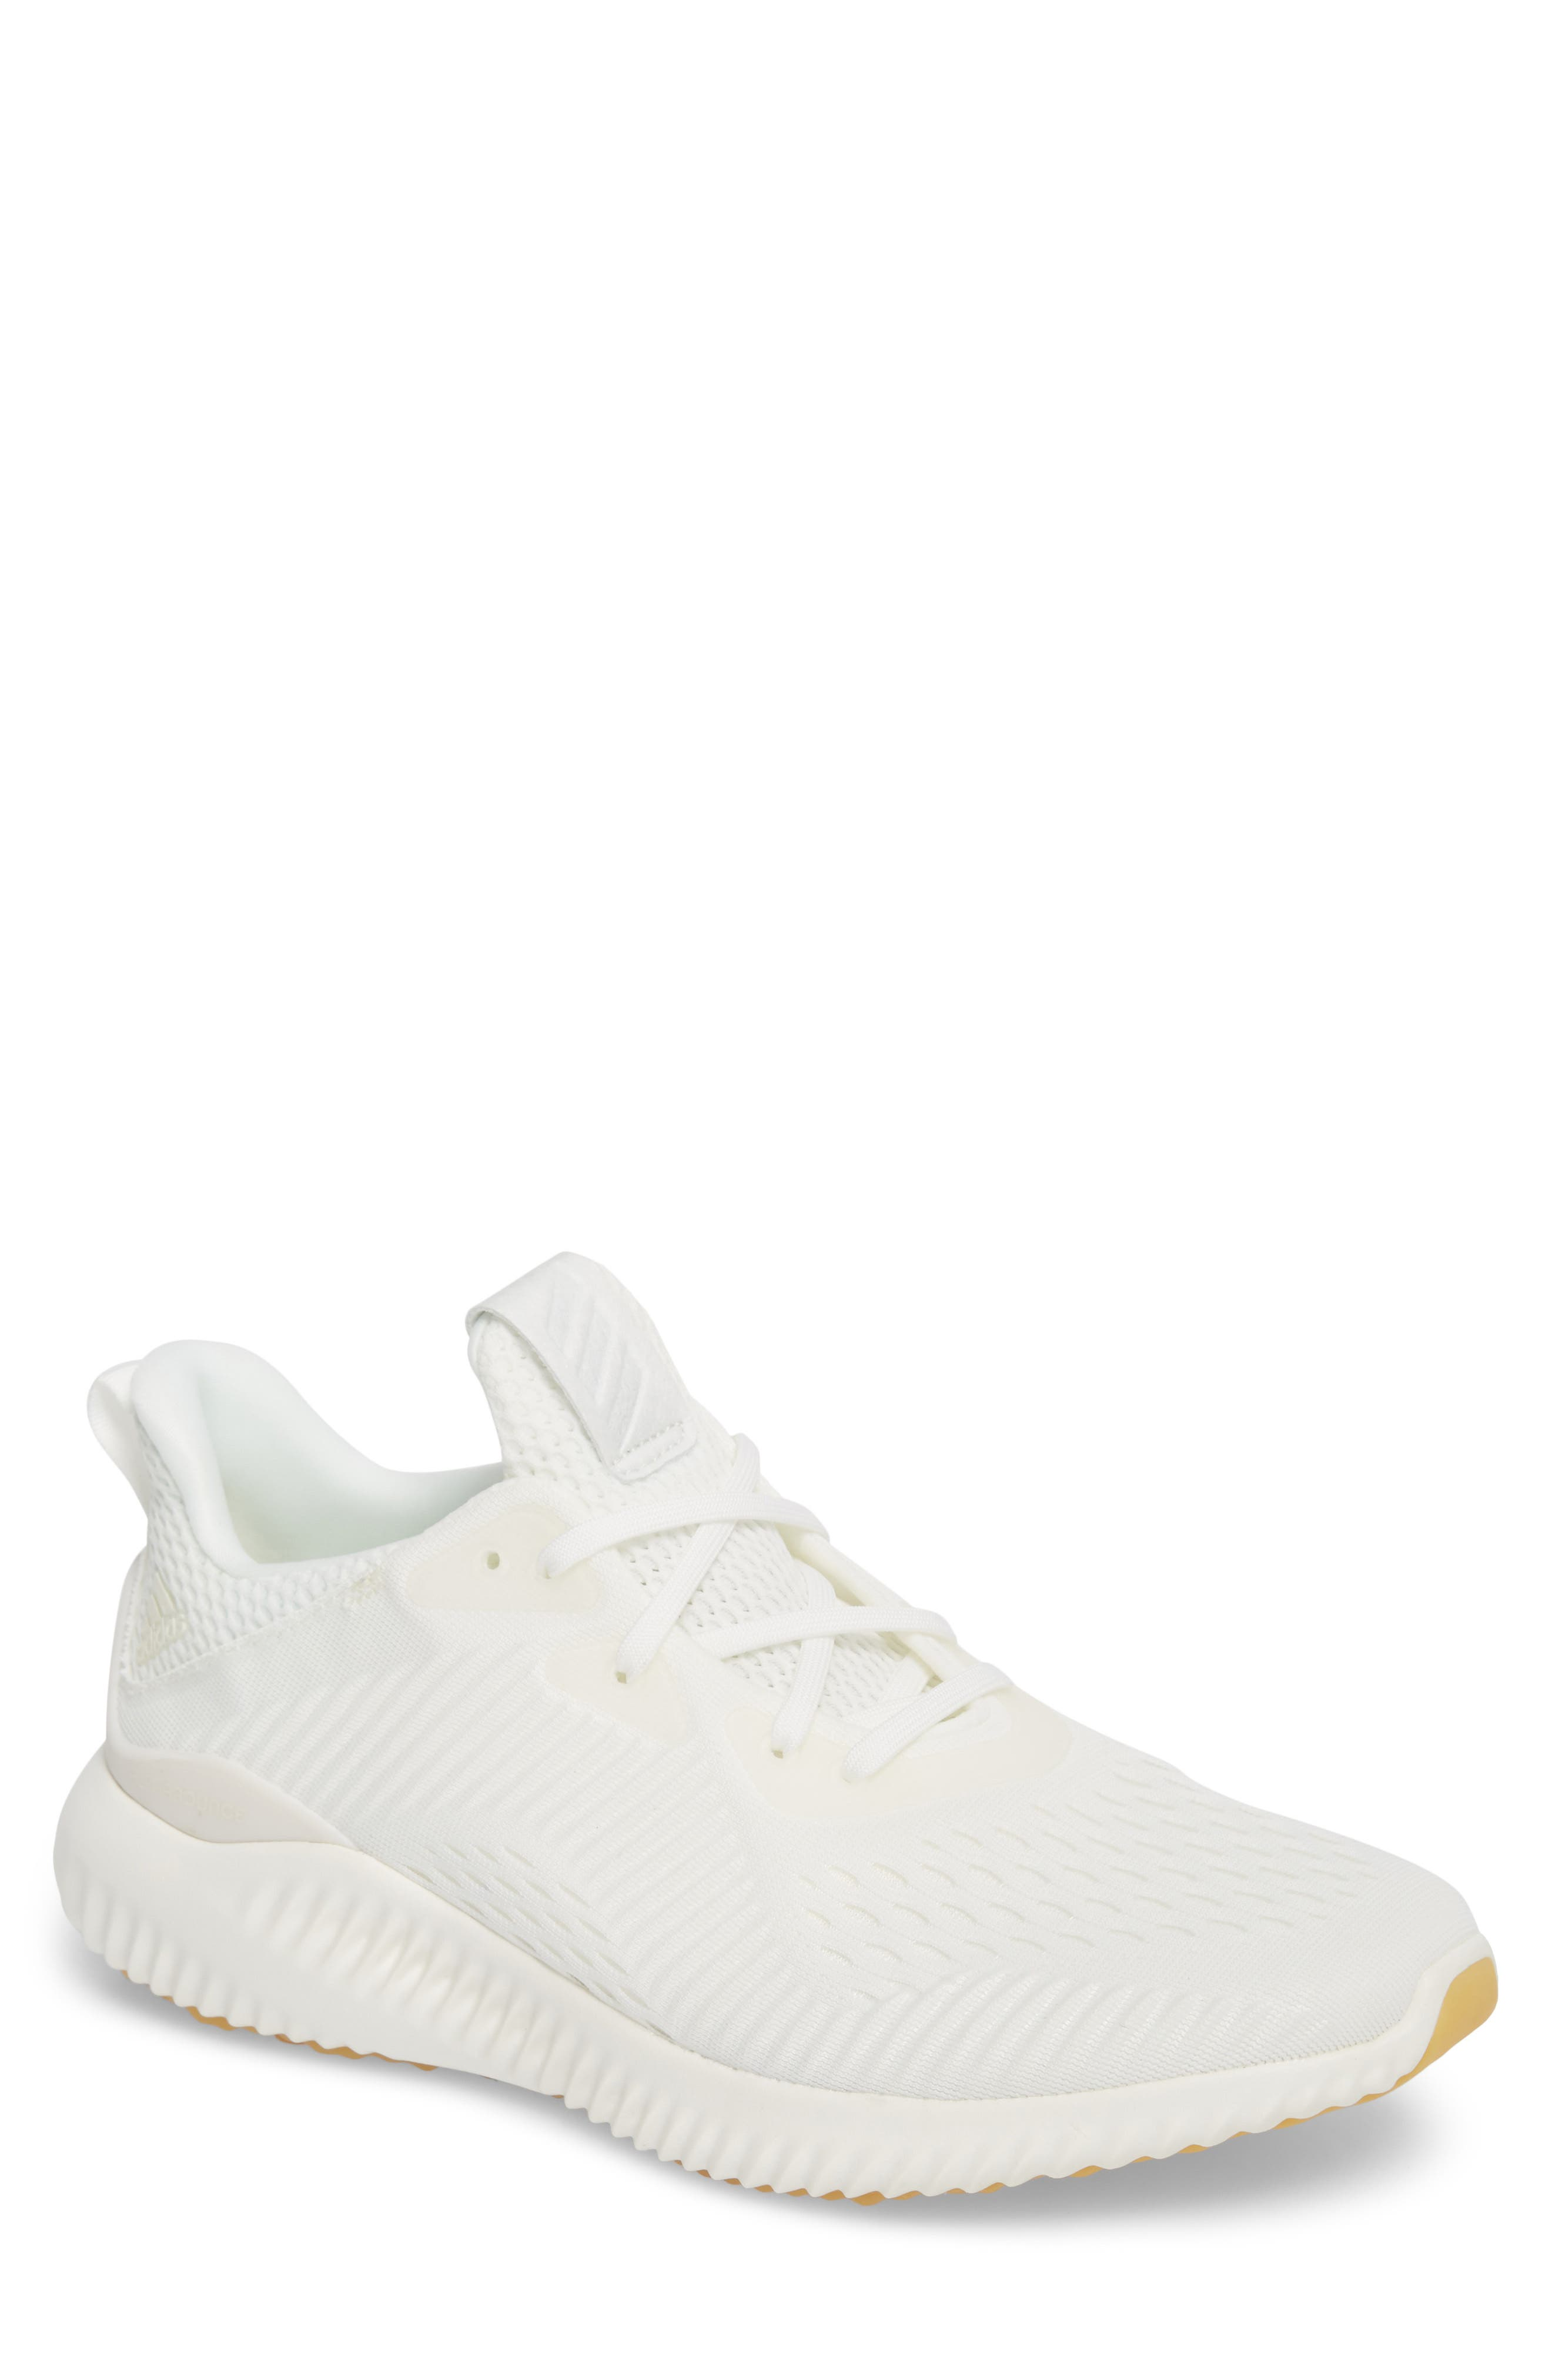 AlphaBounce EM Undye Running Shoe,                             Main thumbnail 1, color,                             Non Dyed/ Grey